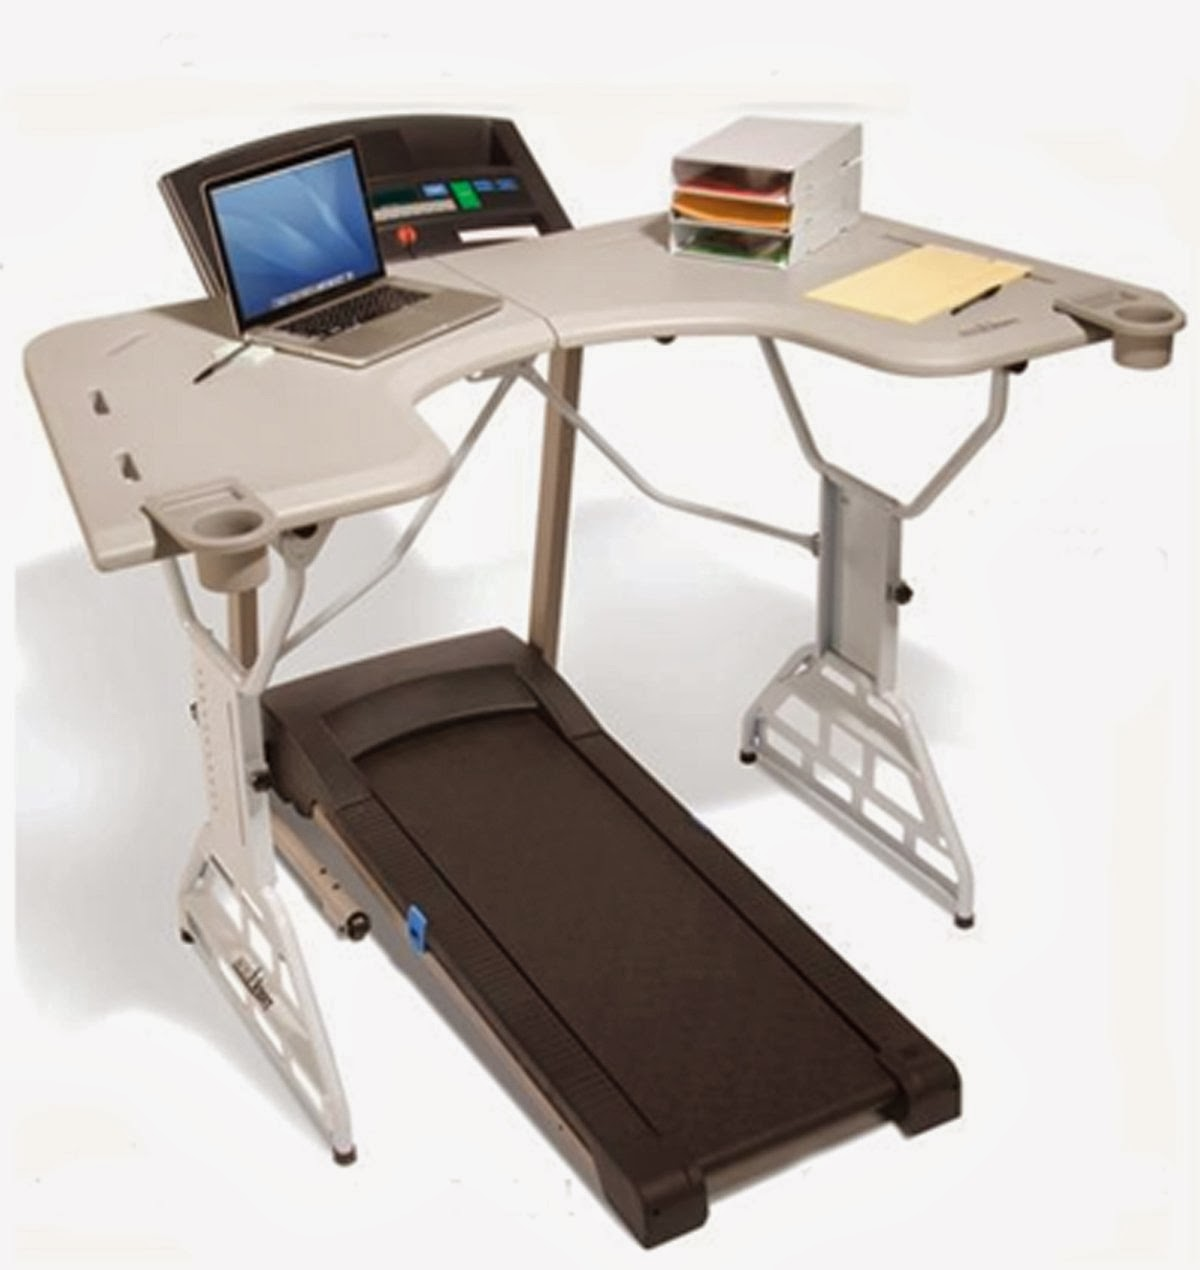 TrekDesk Treadmill Desk, picture, review features & specifications